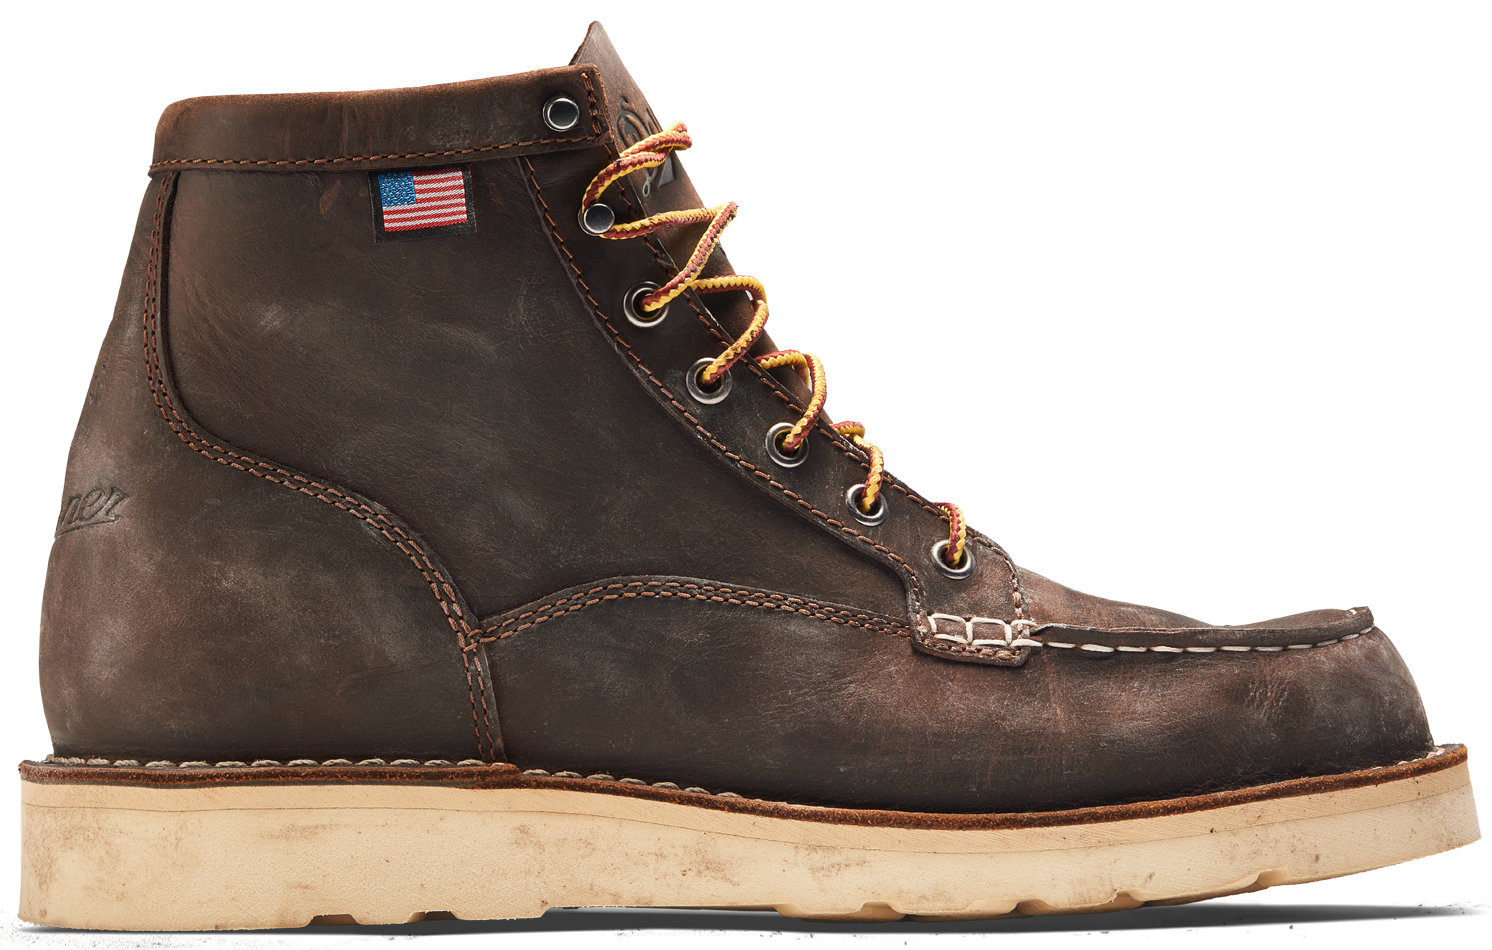 six inch dark brown leather work boot with a mock toe, yellow and dark red laces, and a white outsole